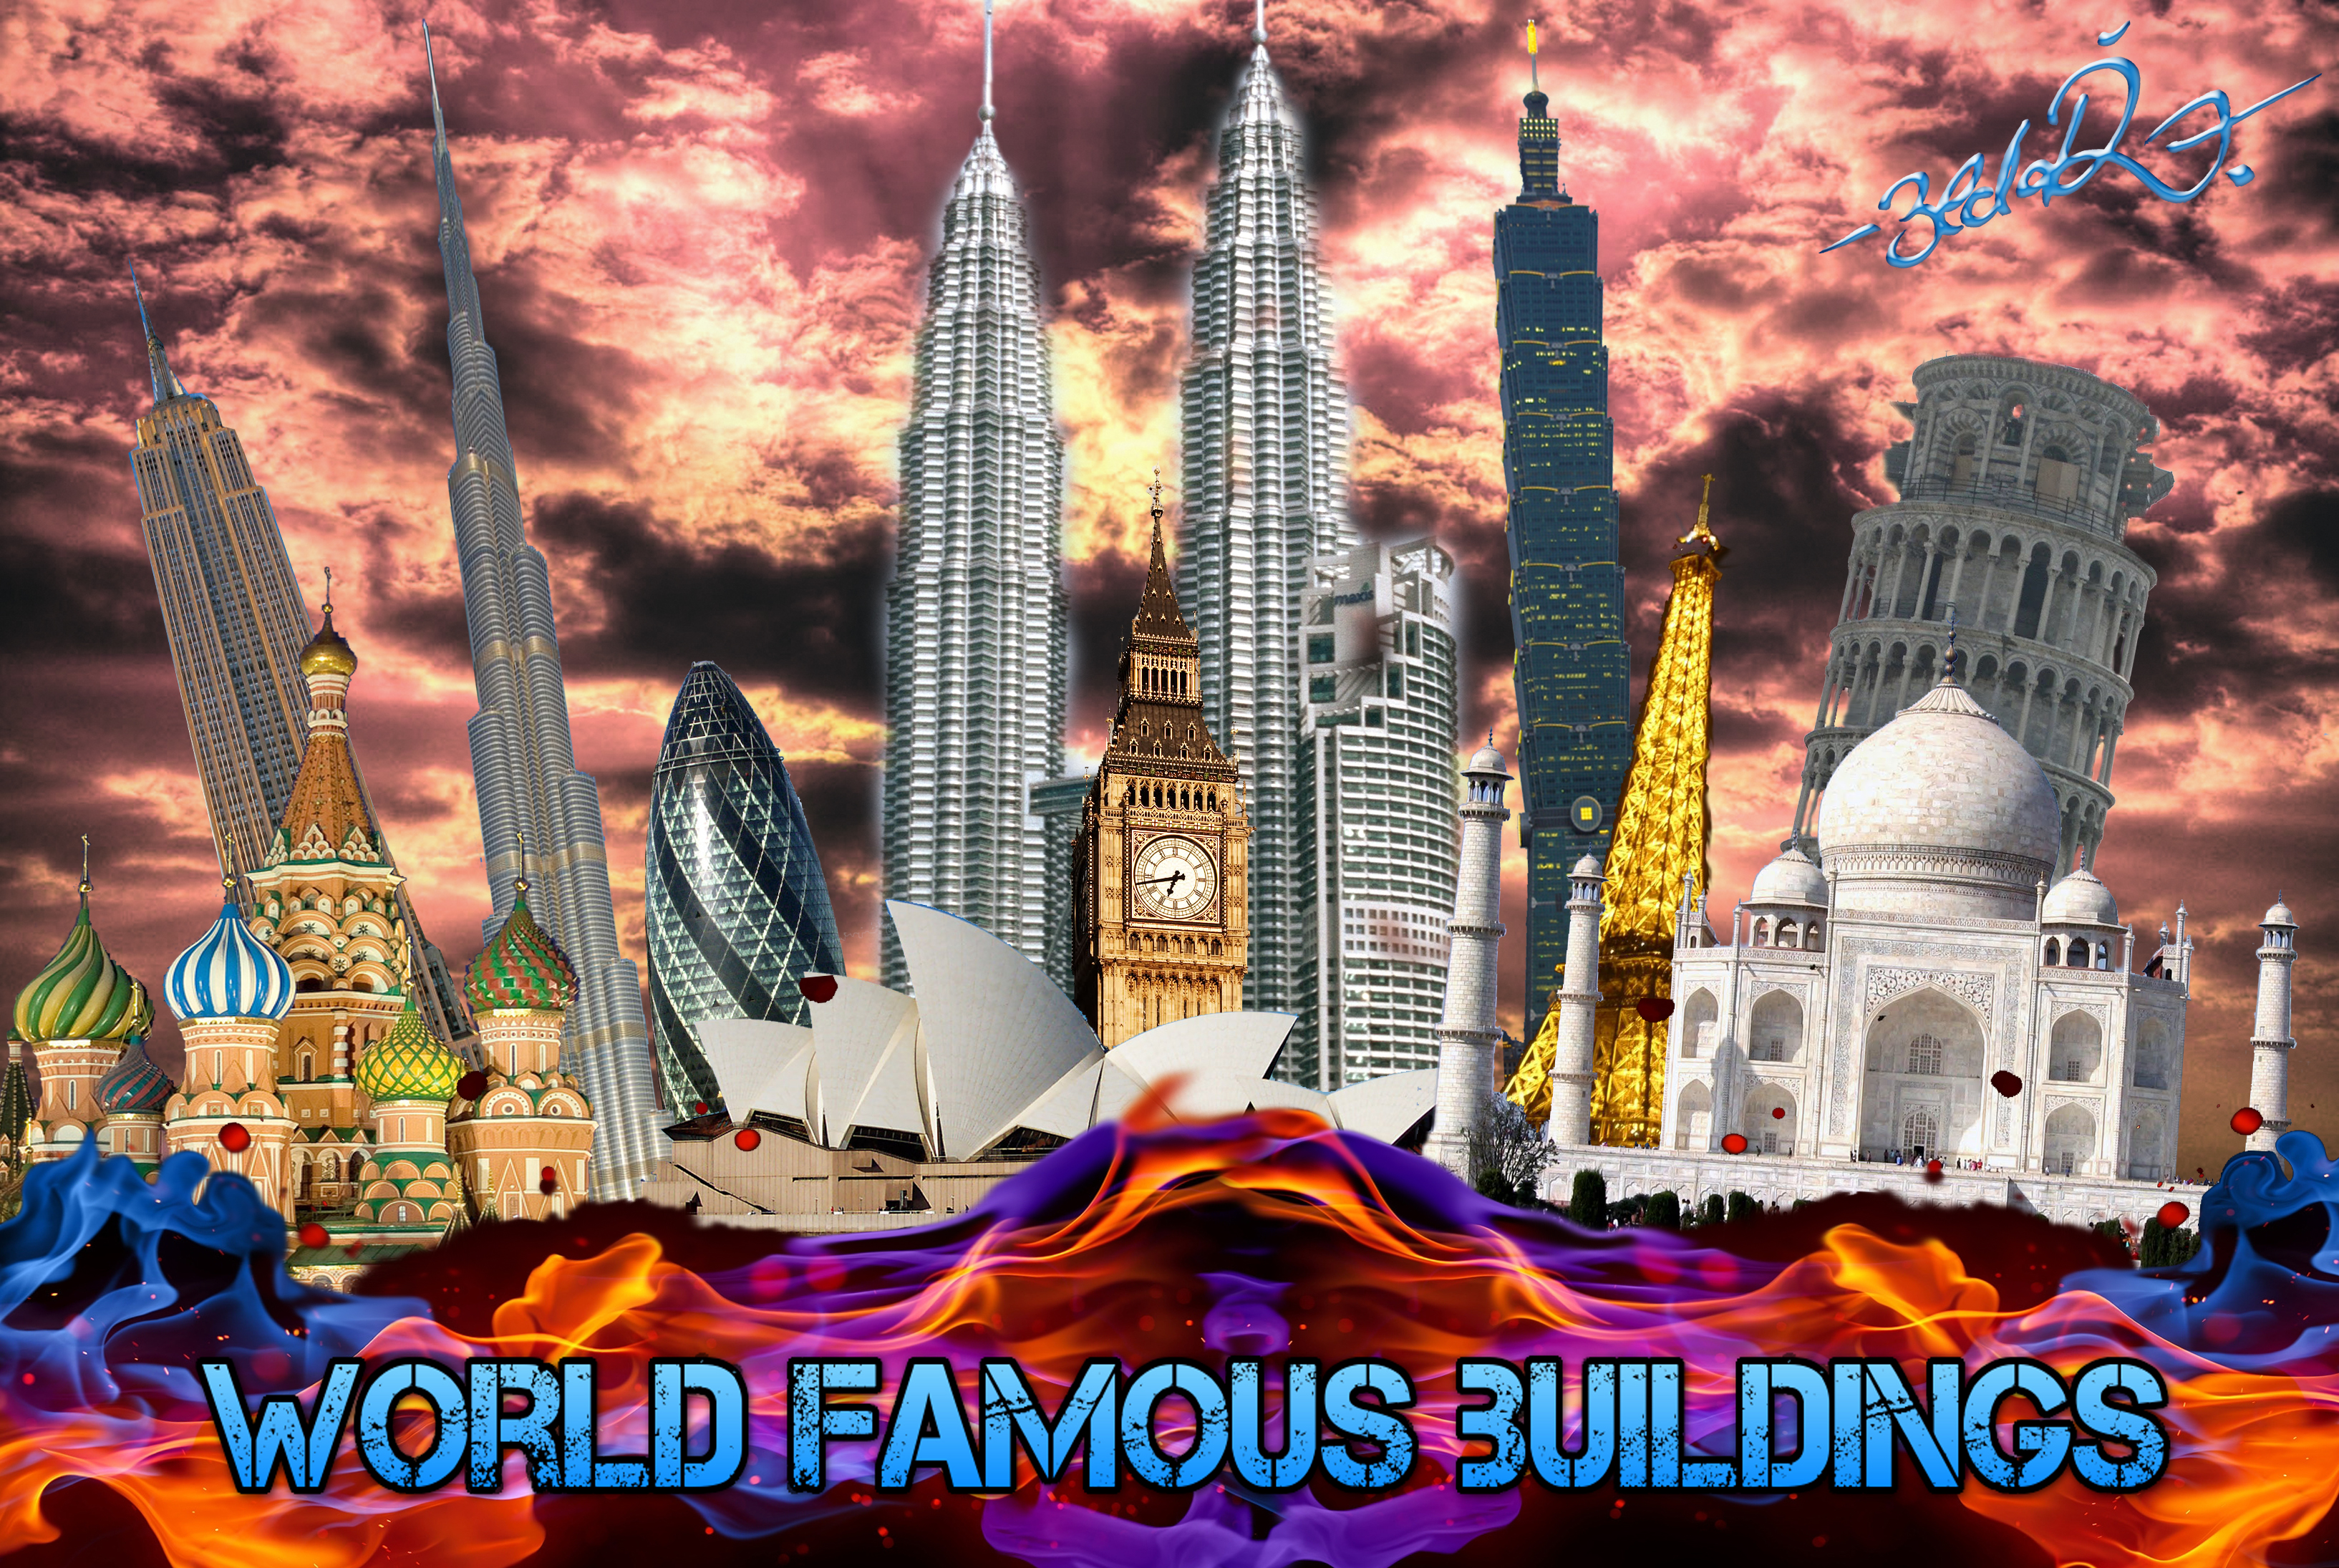 World Famous Images World Famous Buildings by